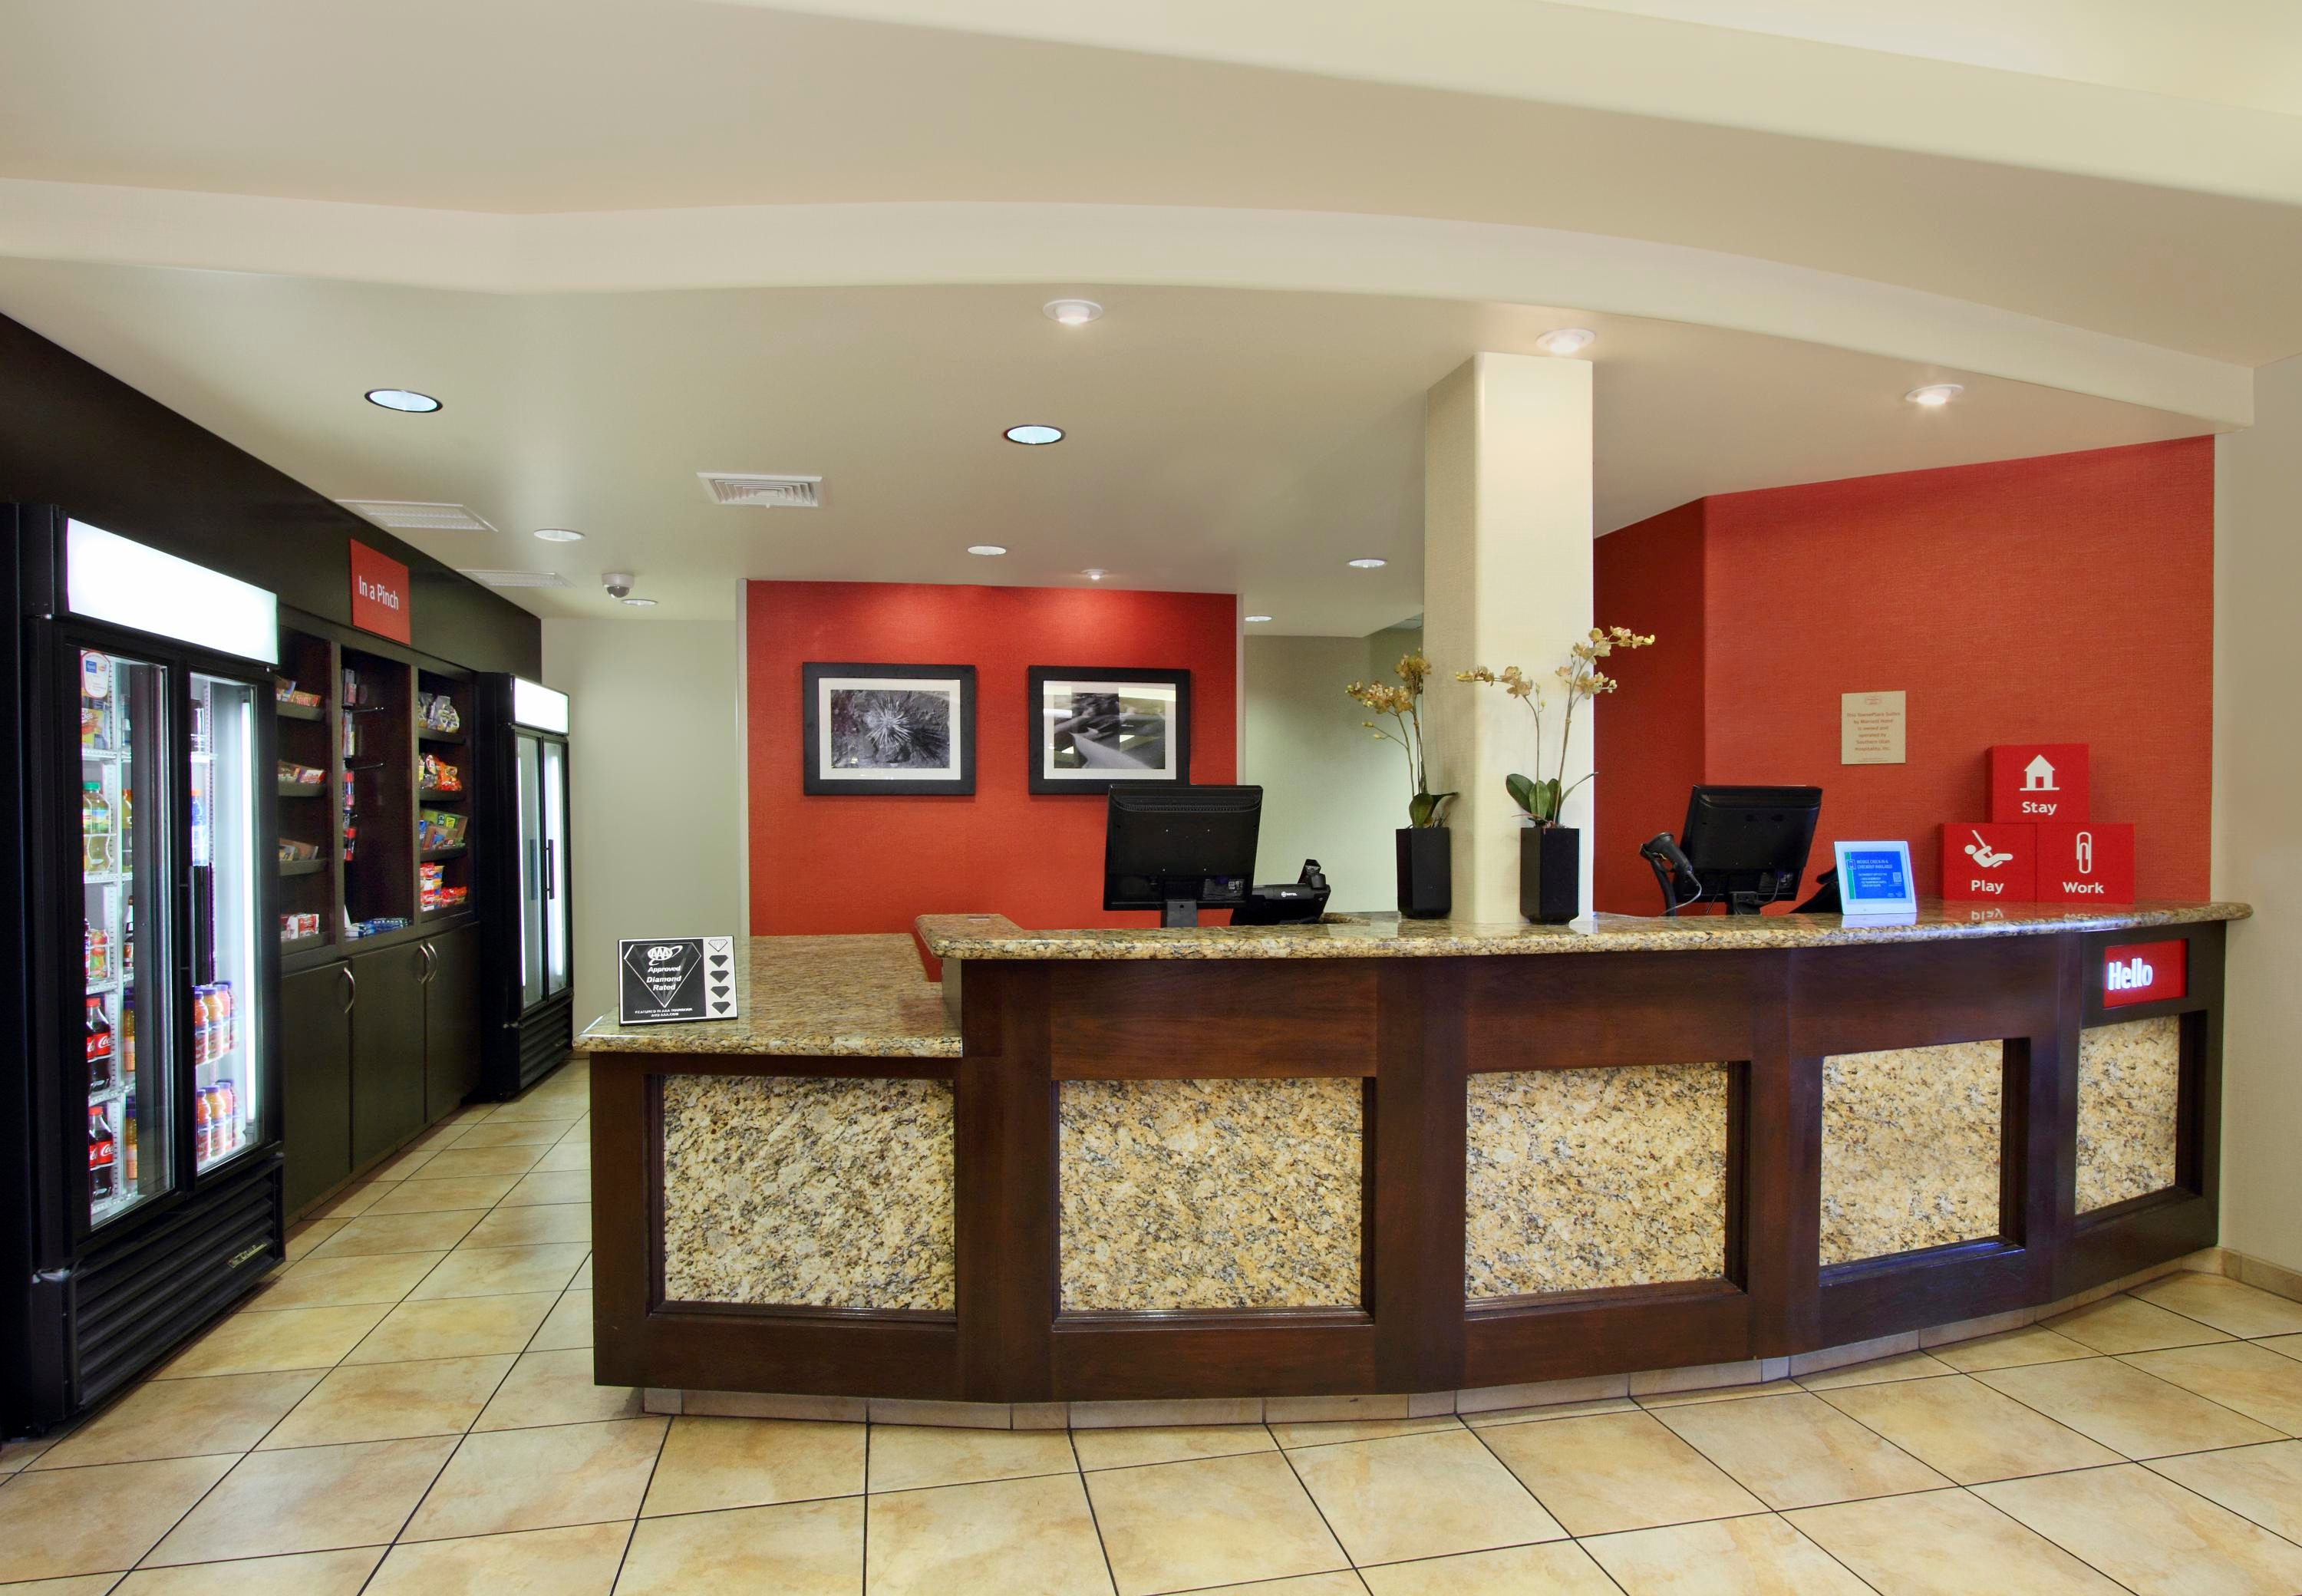 TownePlace Suites by Marriott St. George image 1